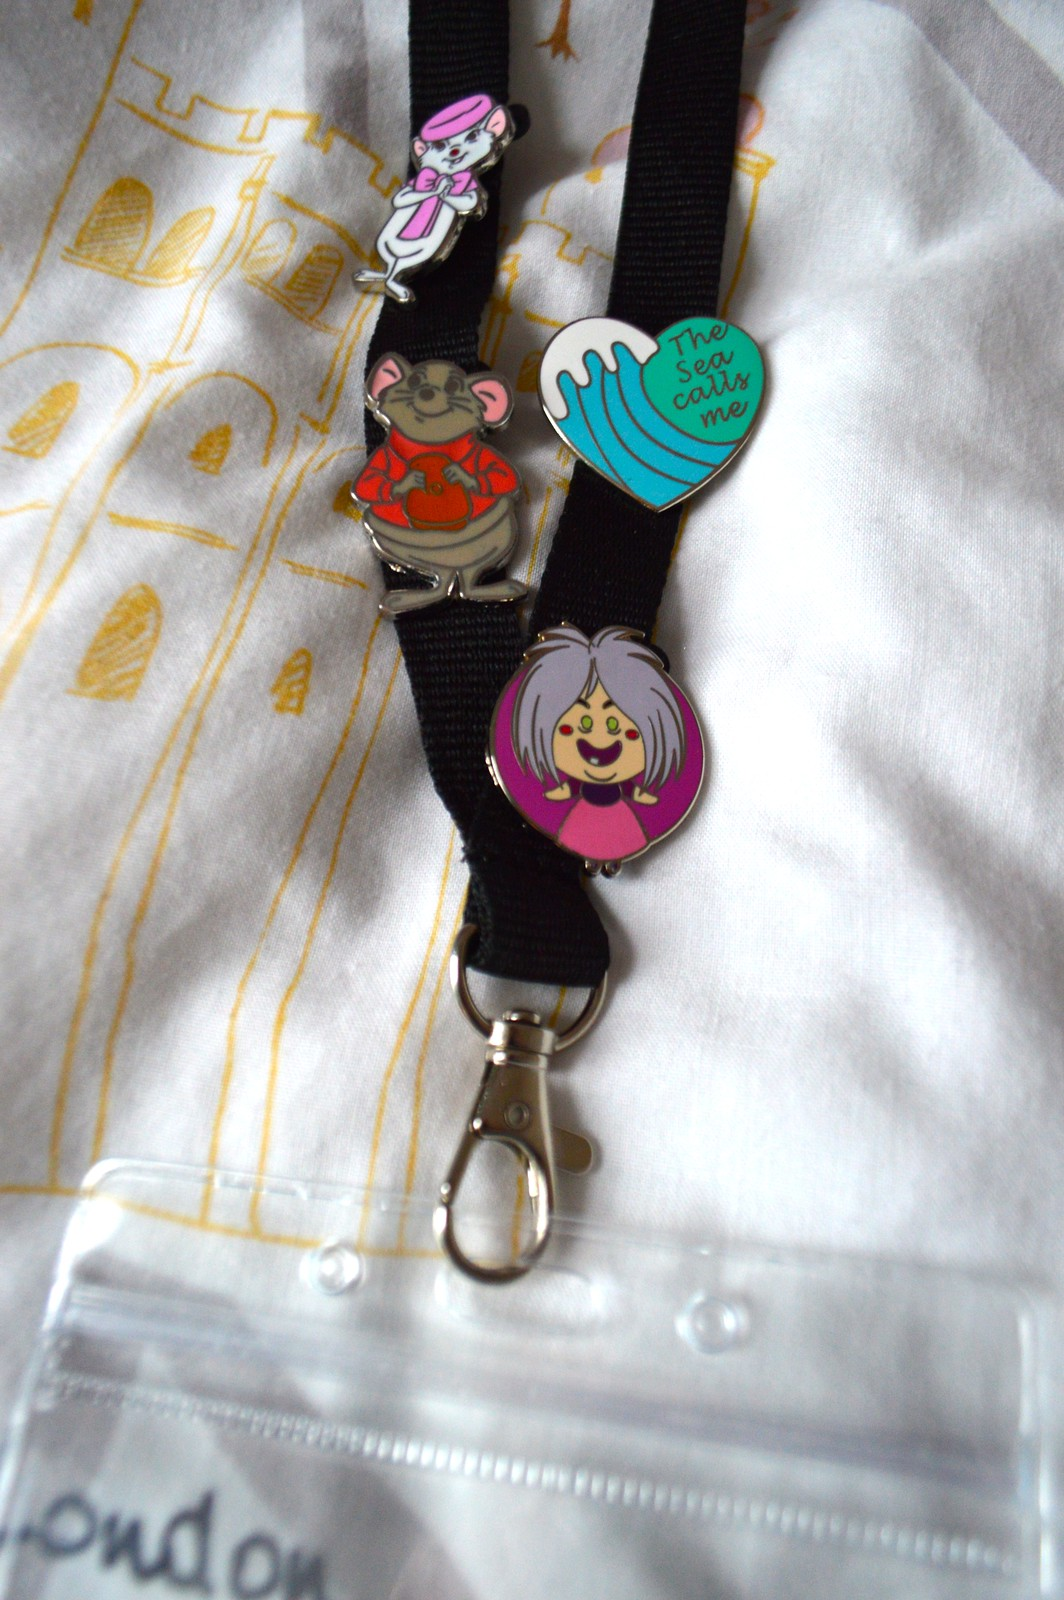 This is a picture of a lanyard with disney pins attached